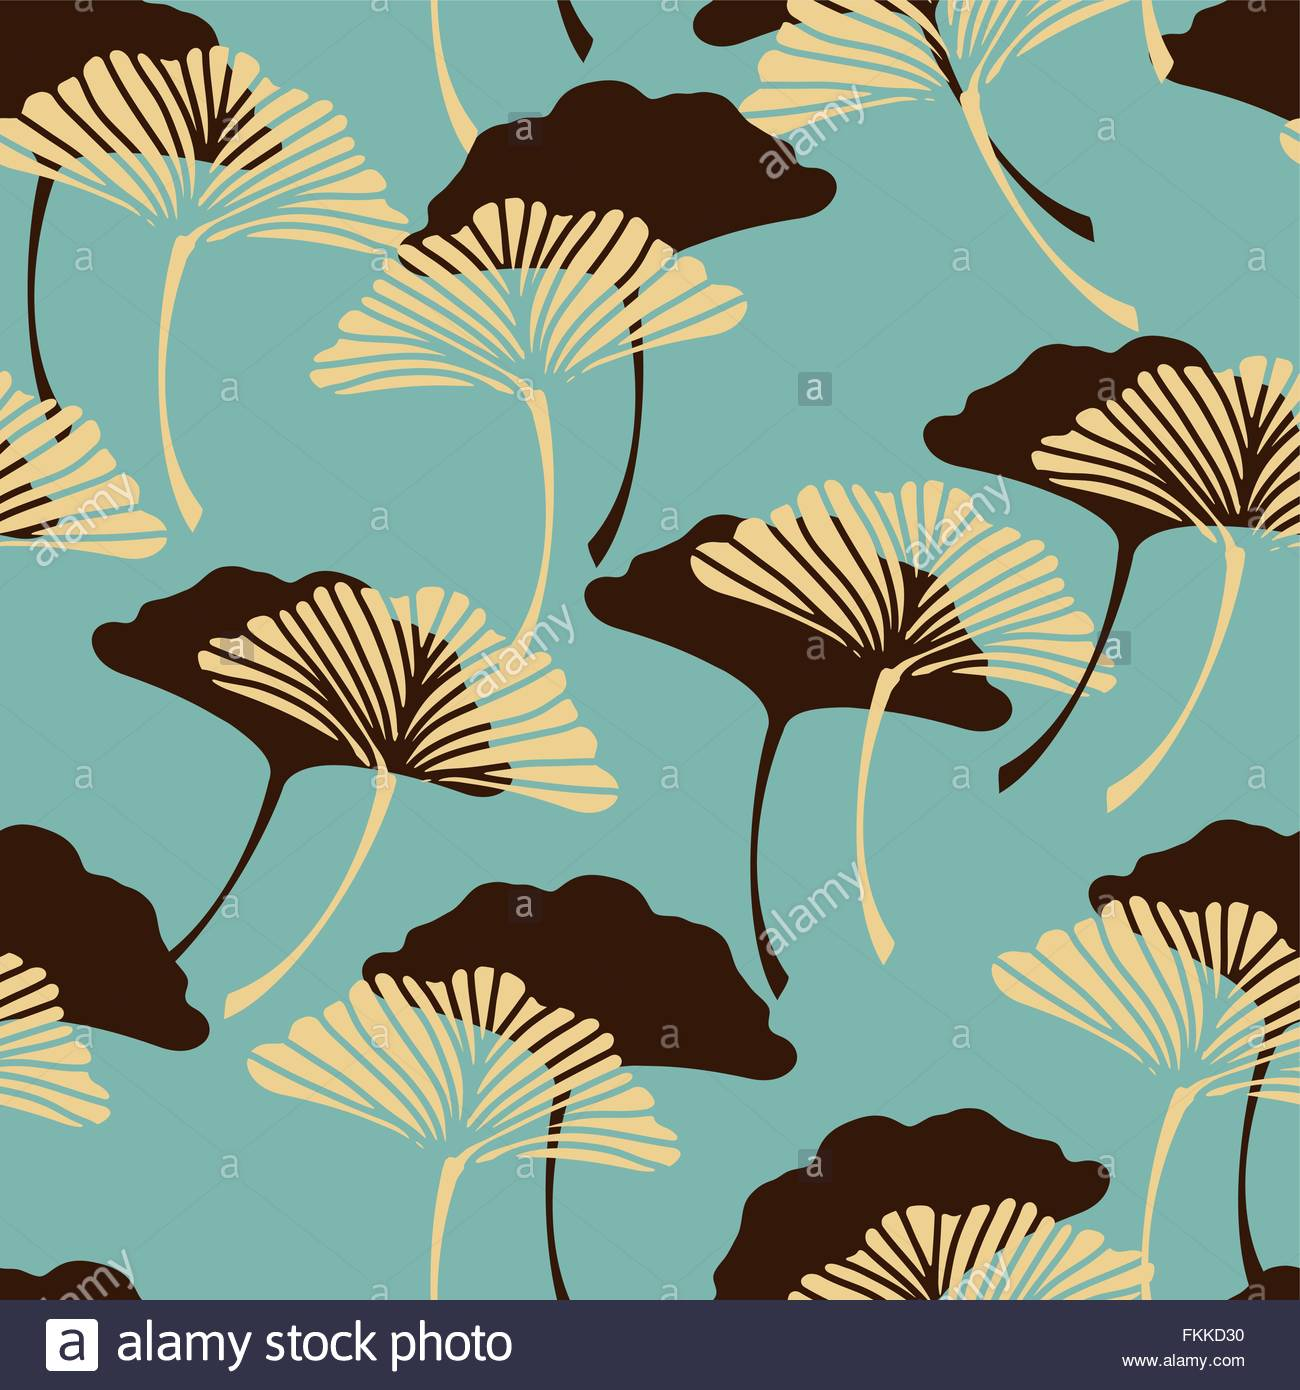 A Japanese Style Ginkgo Biloba Leaves Seamless Tile In A Blue And